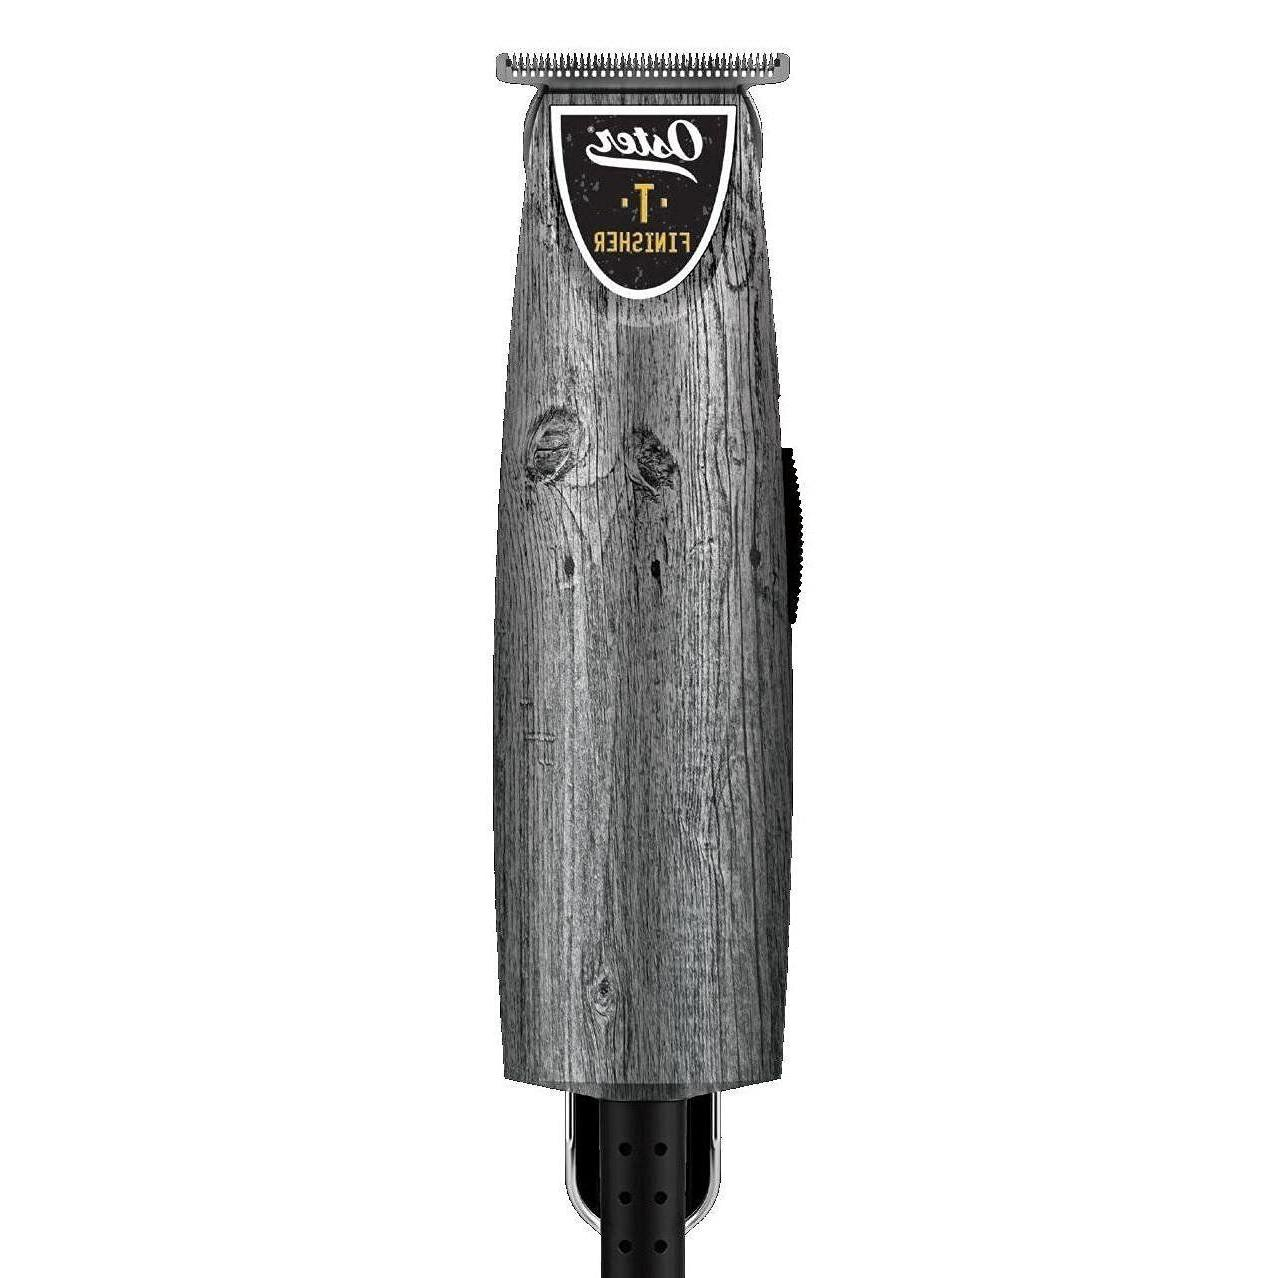 Oster Limited T-finisher Hair Trimmer